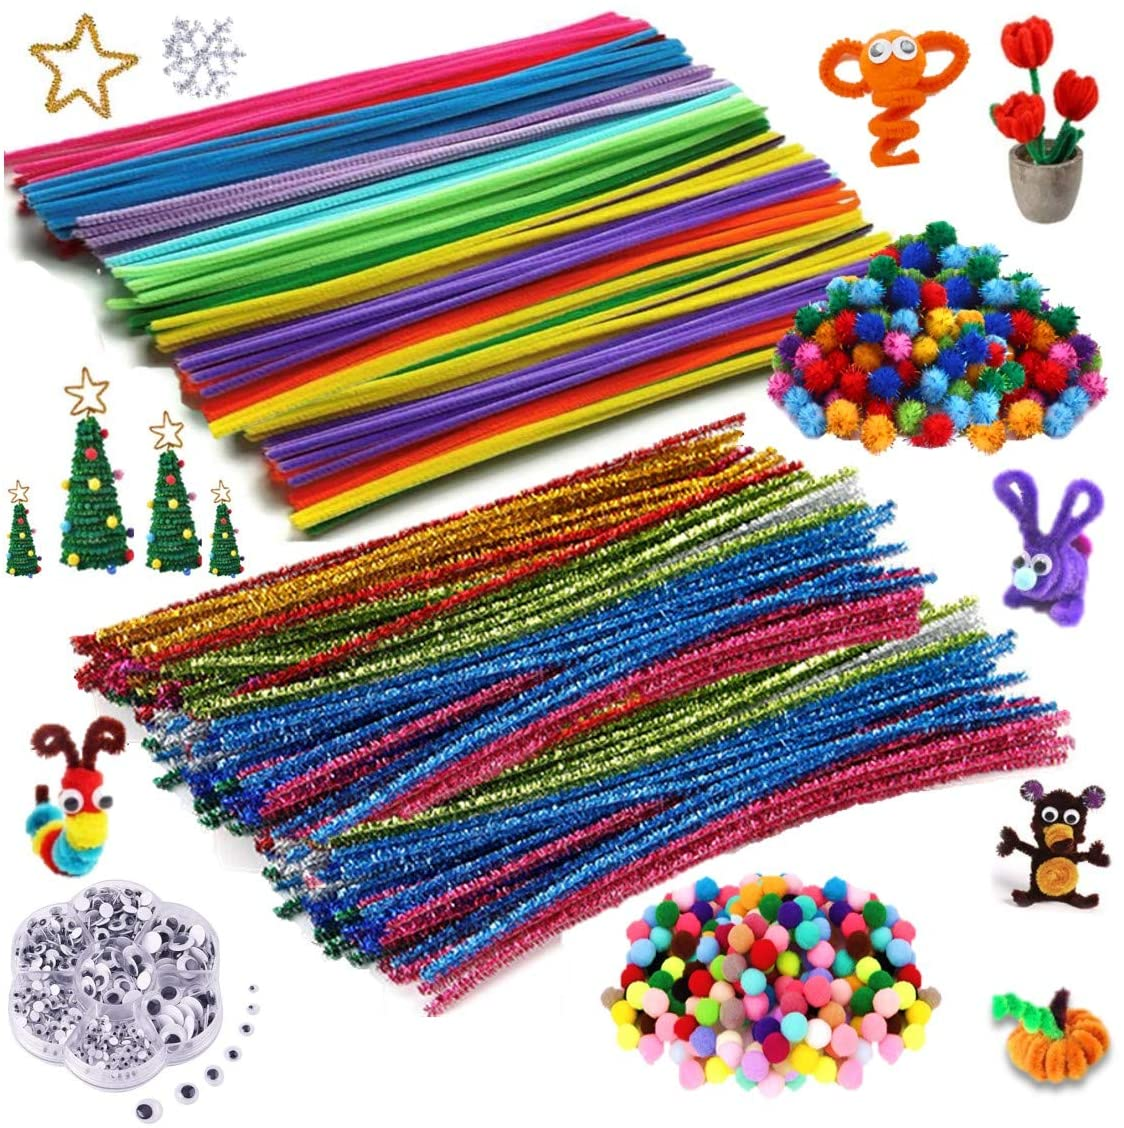 DOKOO -1450 Pcs Multi colorful Fiber Pipe Cleaner Chenille Stems Set -Arts and Crafts Supplies for Kids -Craft Art Supply Kit for Toddlers Age 3 4 5 6 7 8 9 -All in One D.I.Y. Crafts Arts Set for Kids